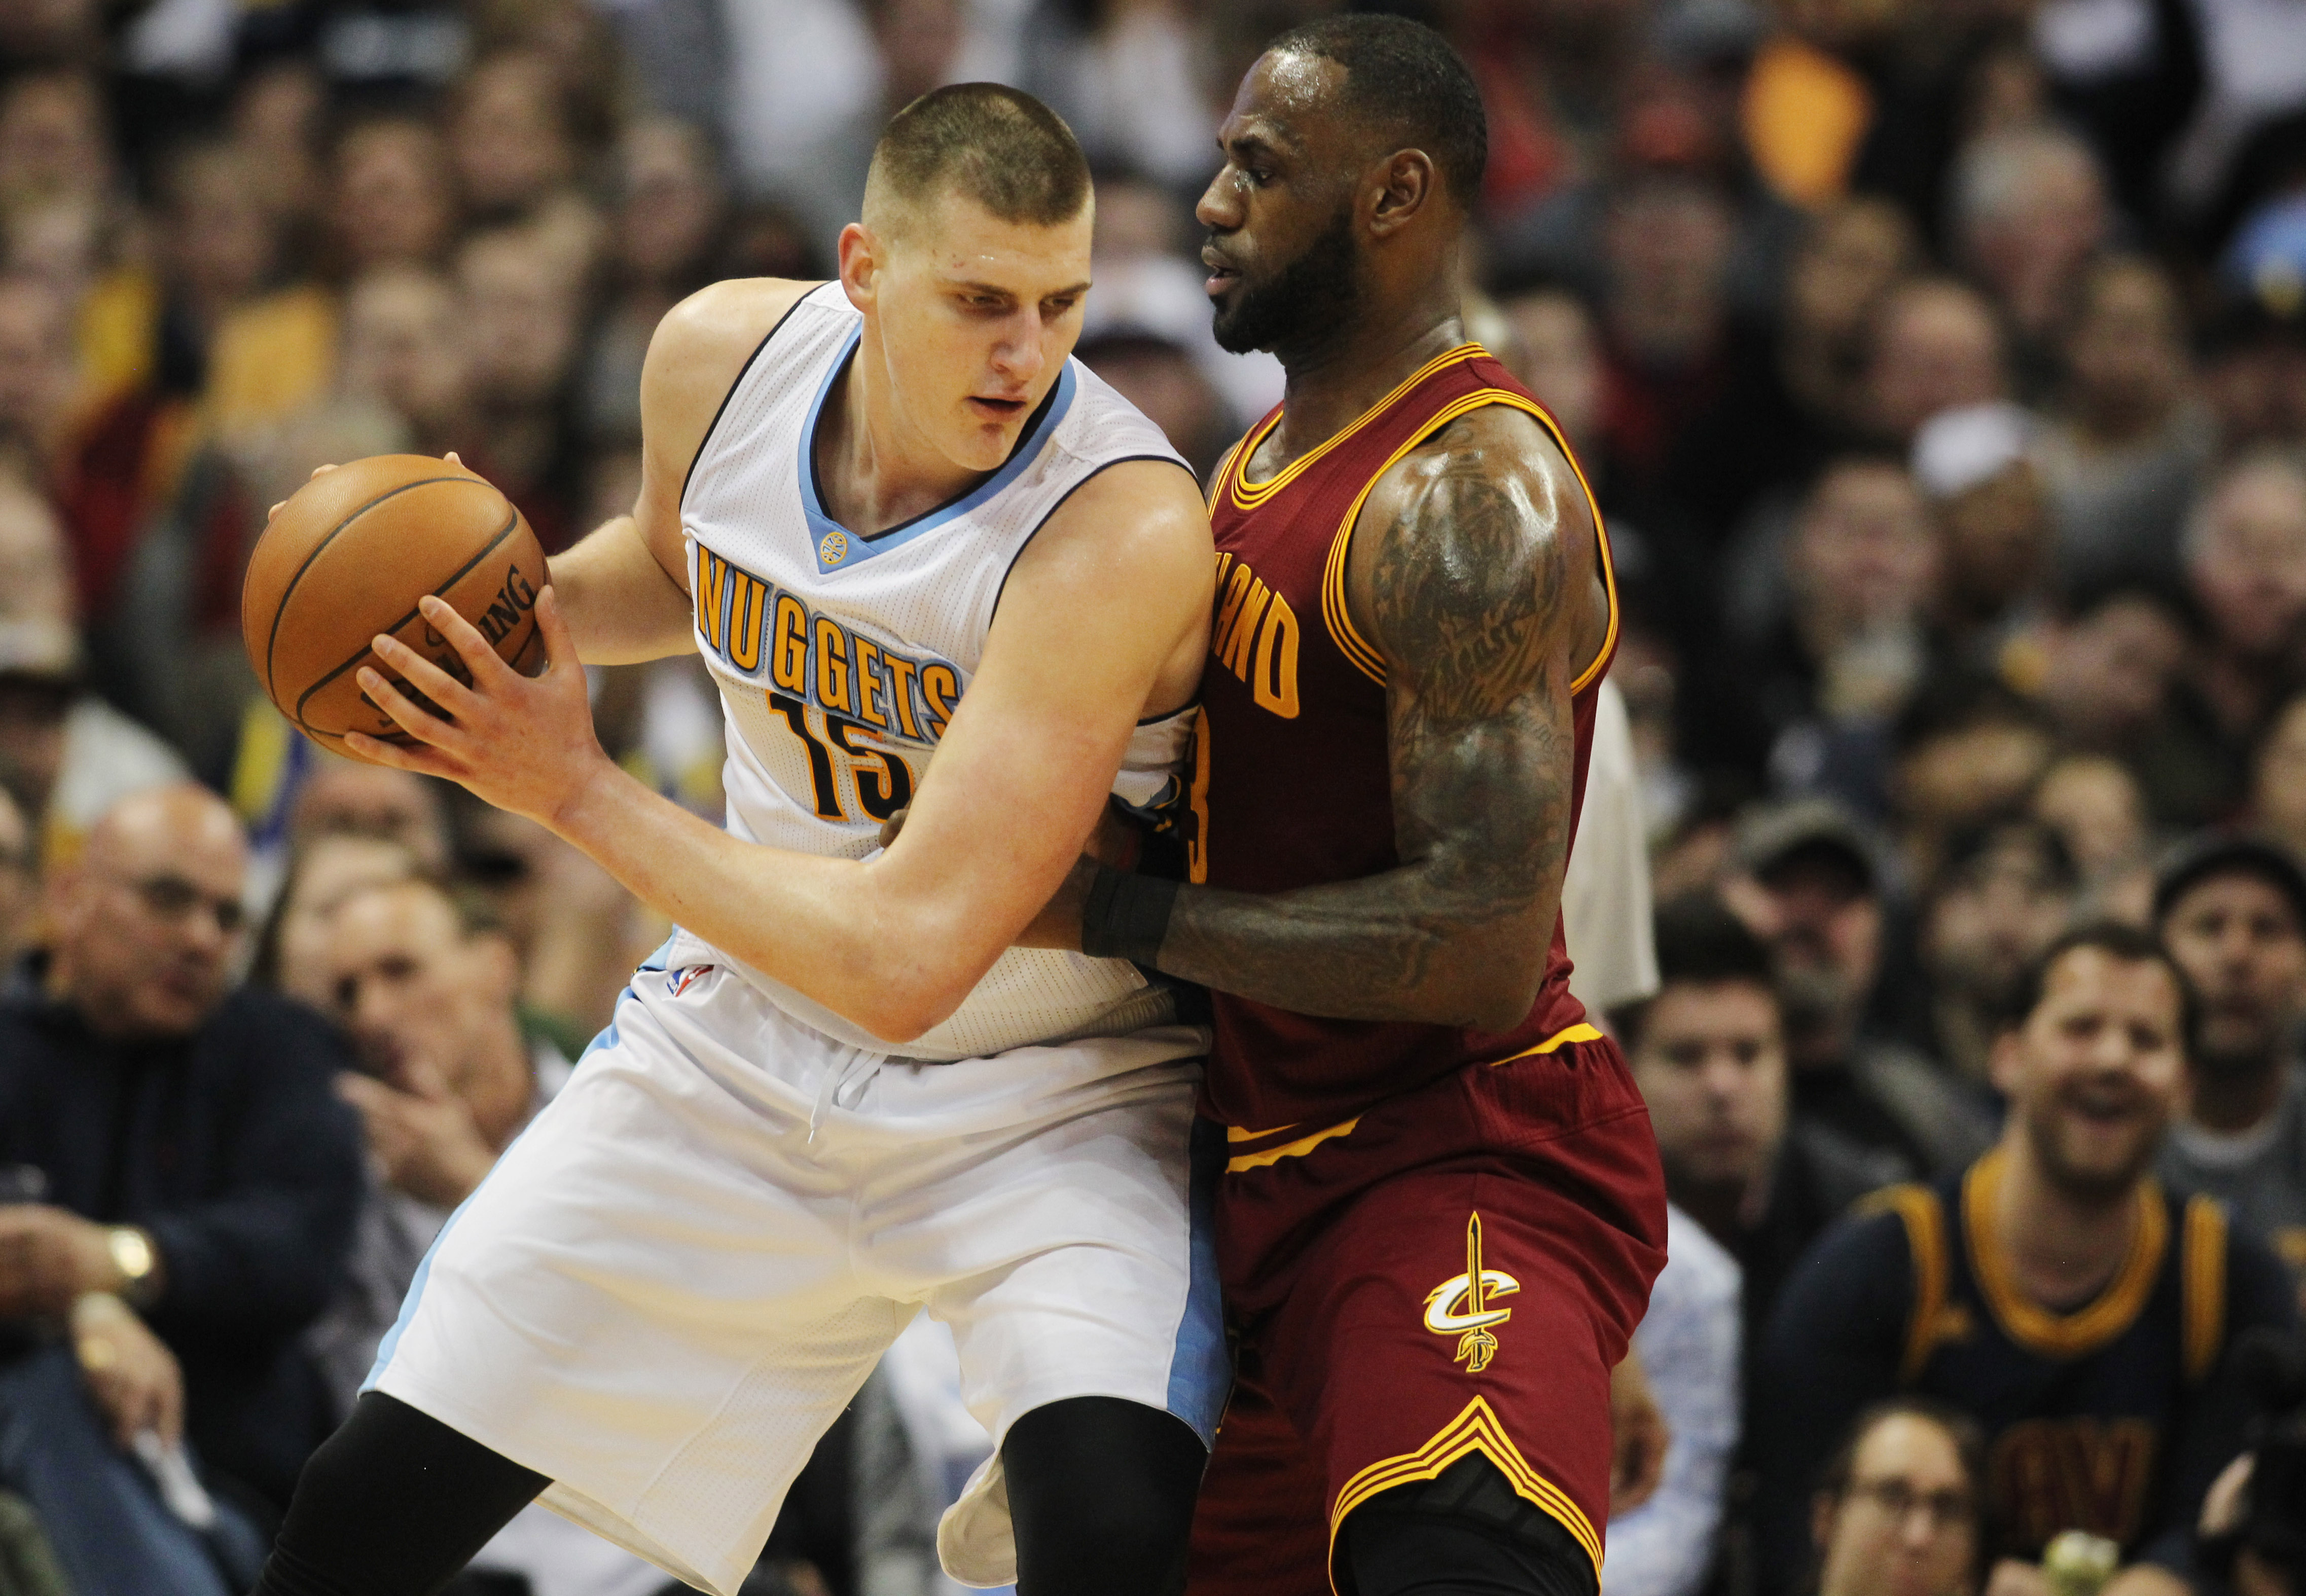 9965380-nba-cleveland-cavaliers-at-denver-nuggets